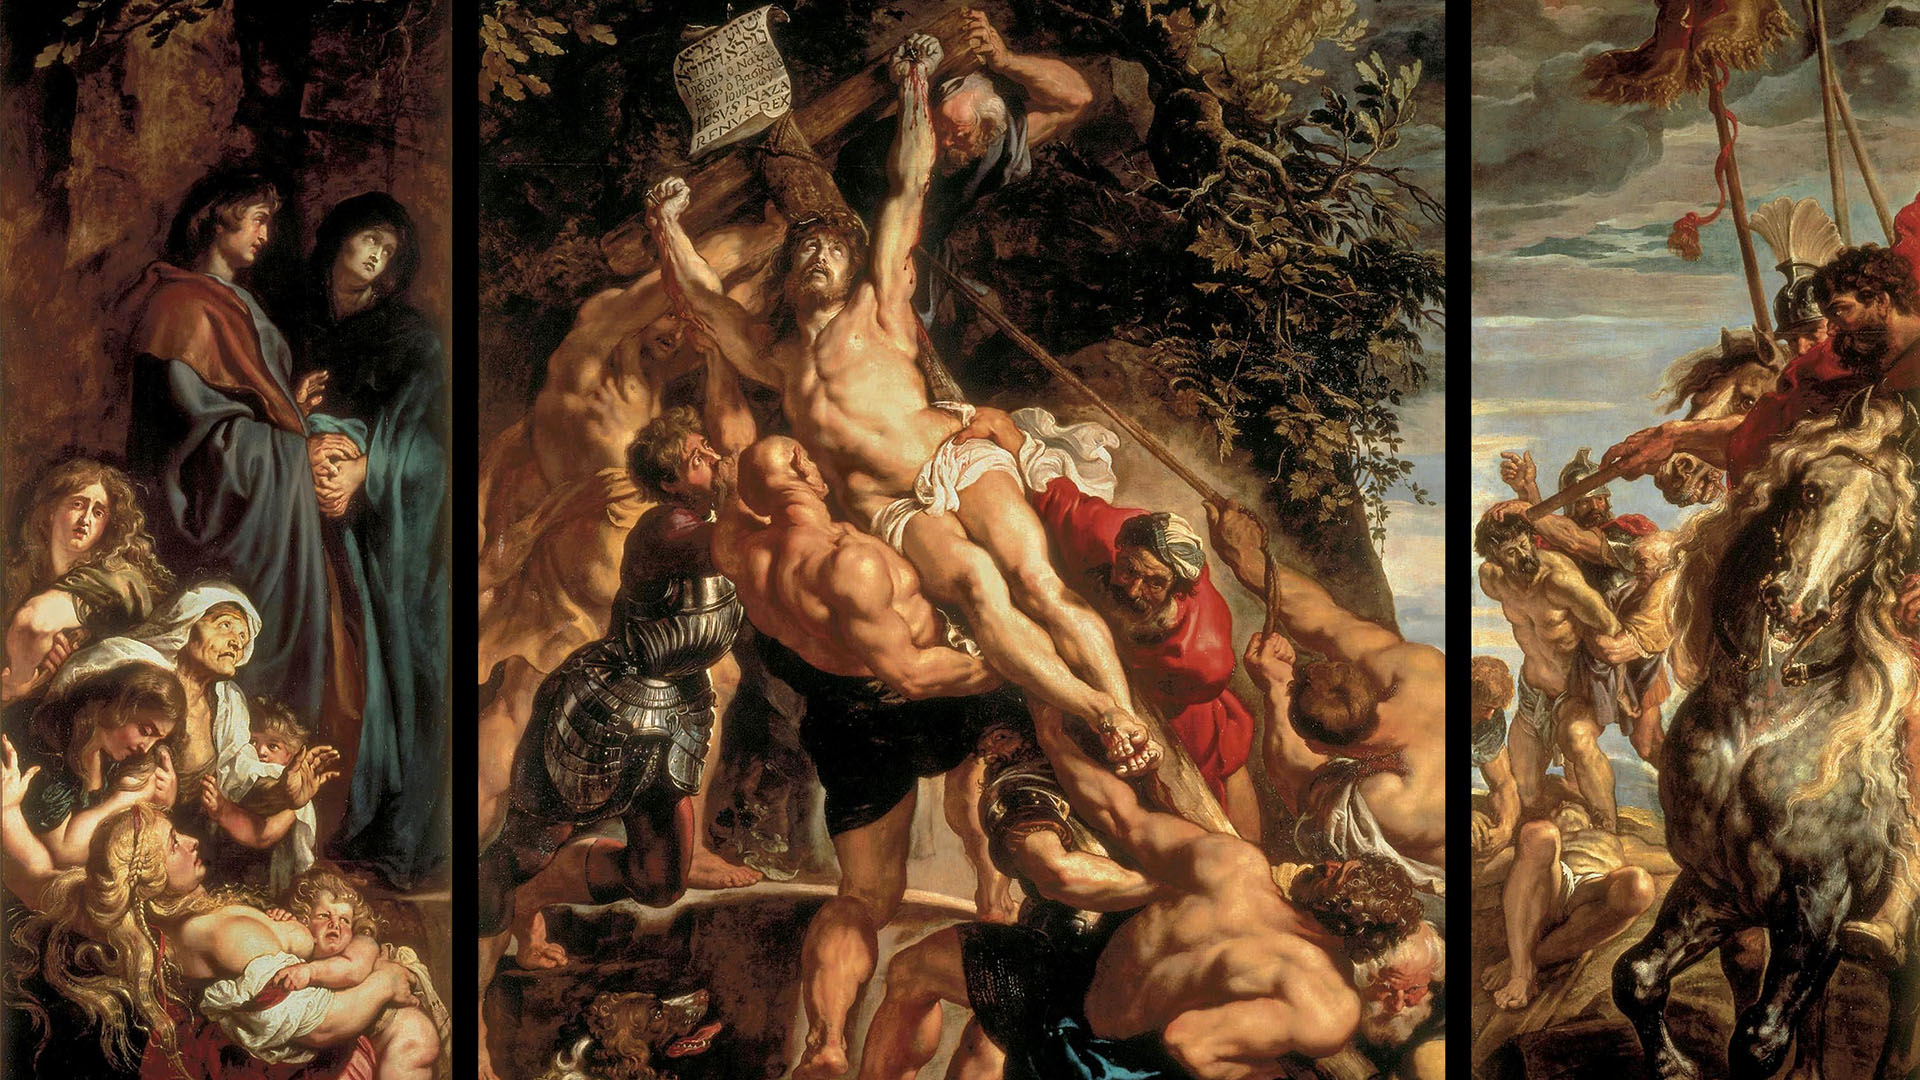 ルーベンス Peter Paul Rubens - The Elevation of the Cross 1920x1080